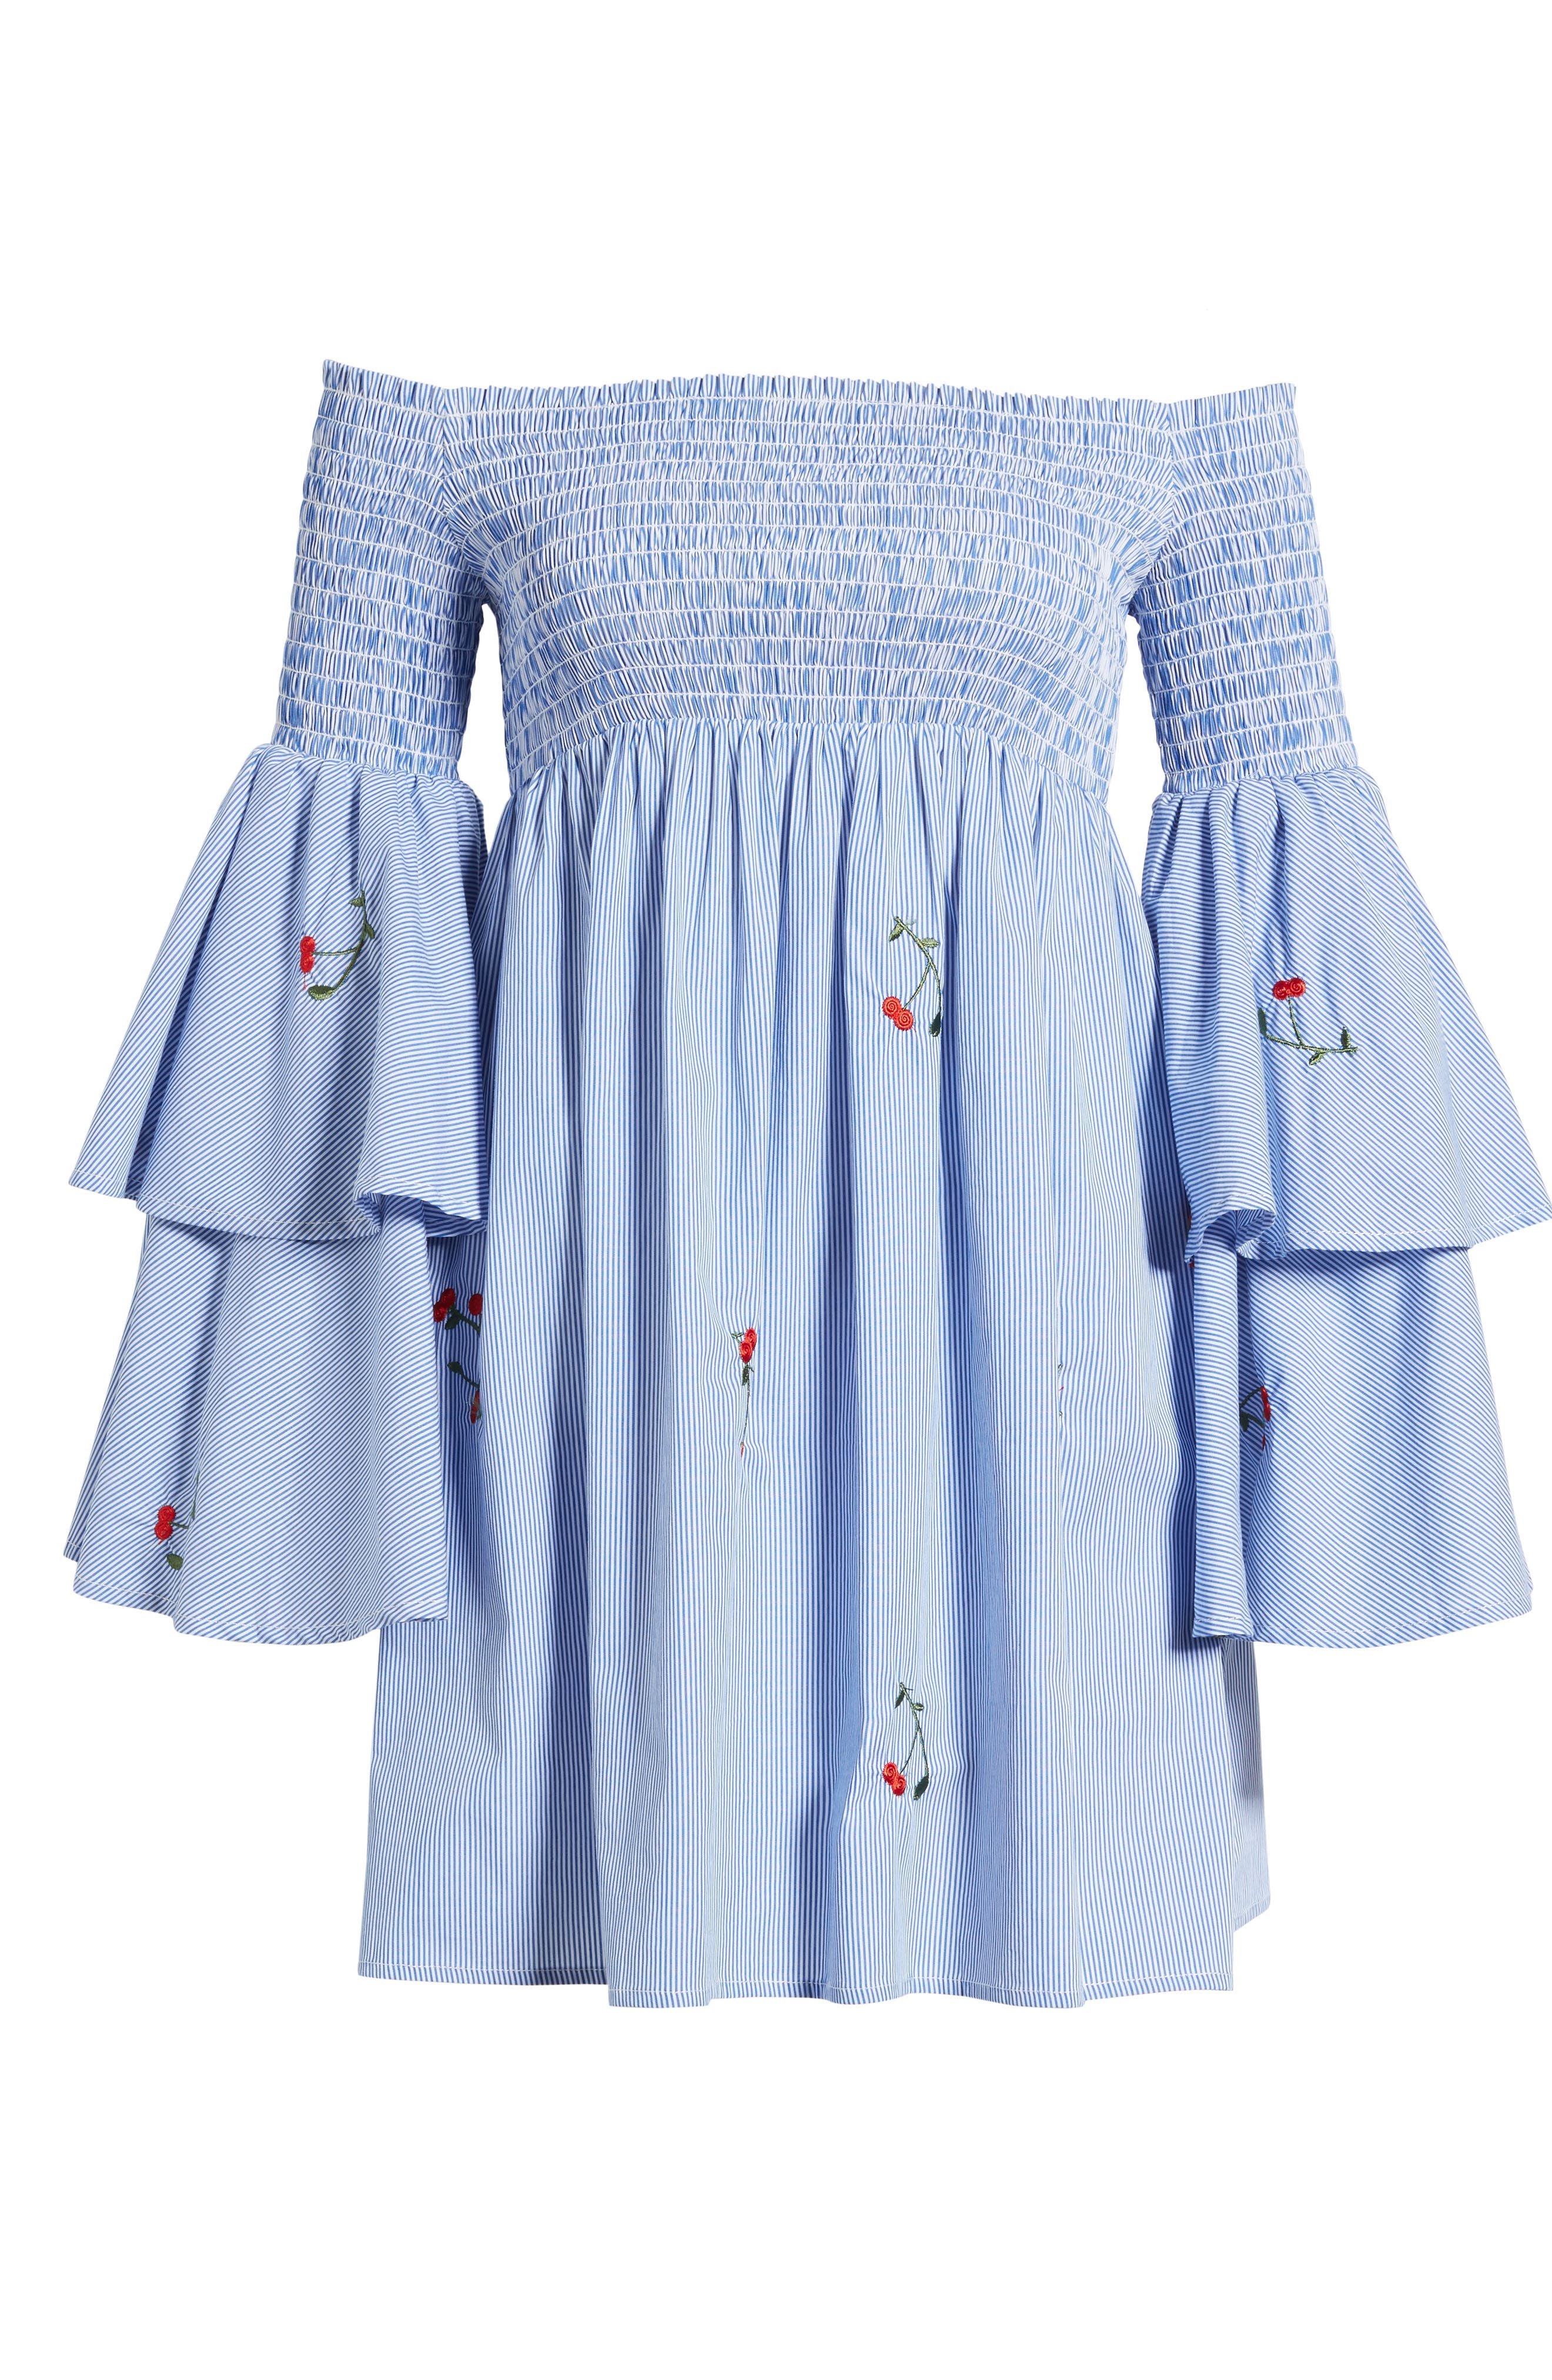 Smocked Off the Shoulder Bell Sleeve Dress,                             Alternate thumbnail 6, color,                             Blue